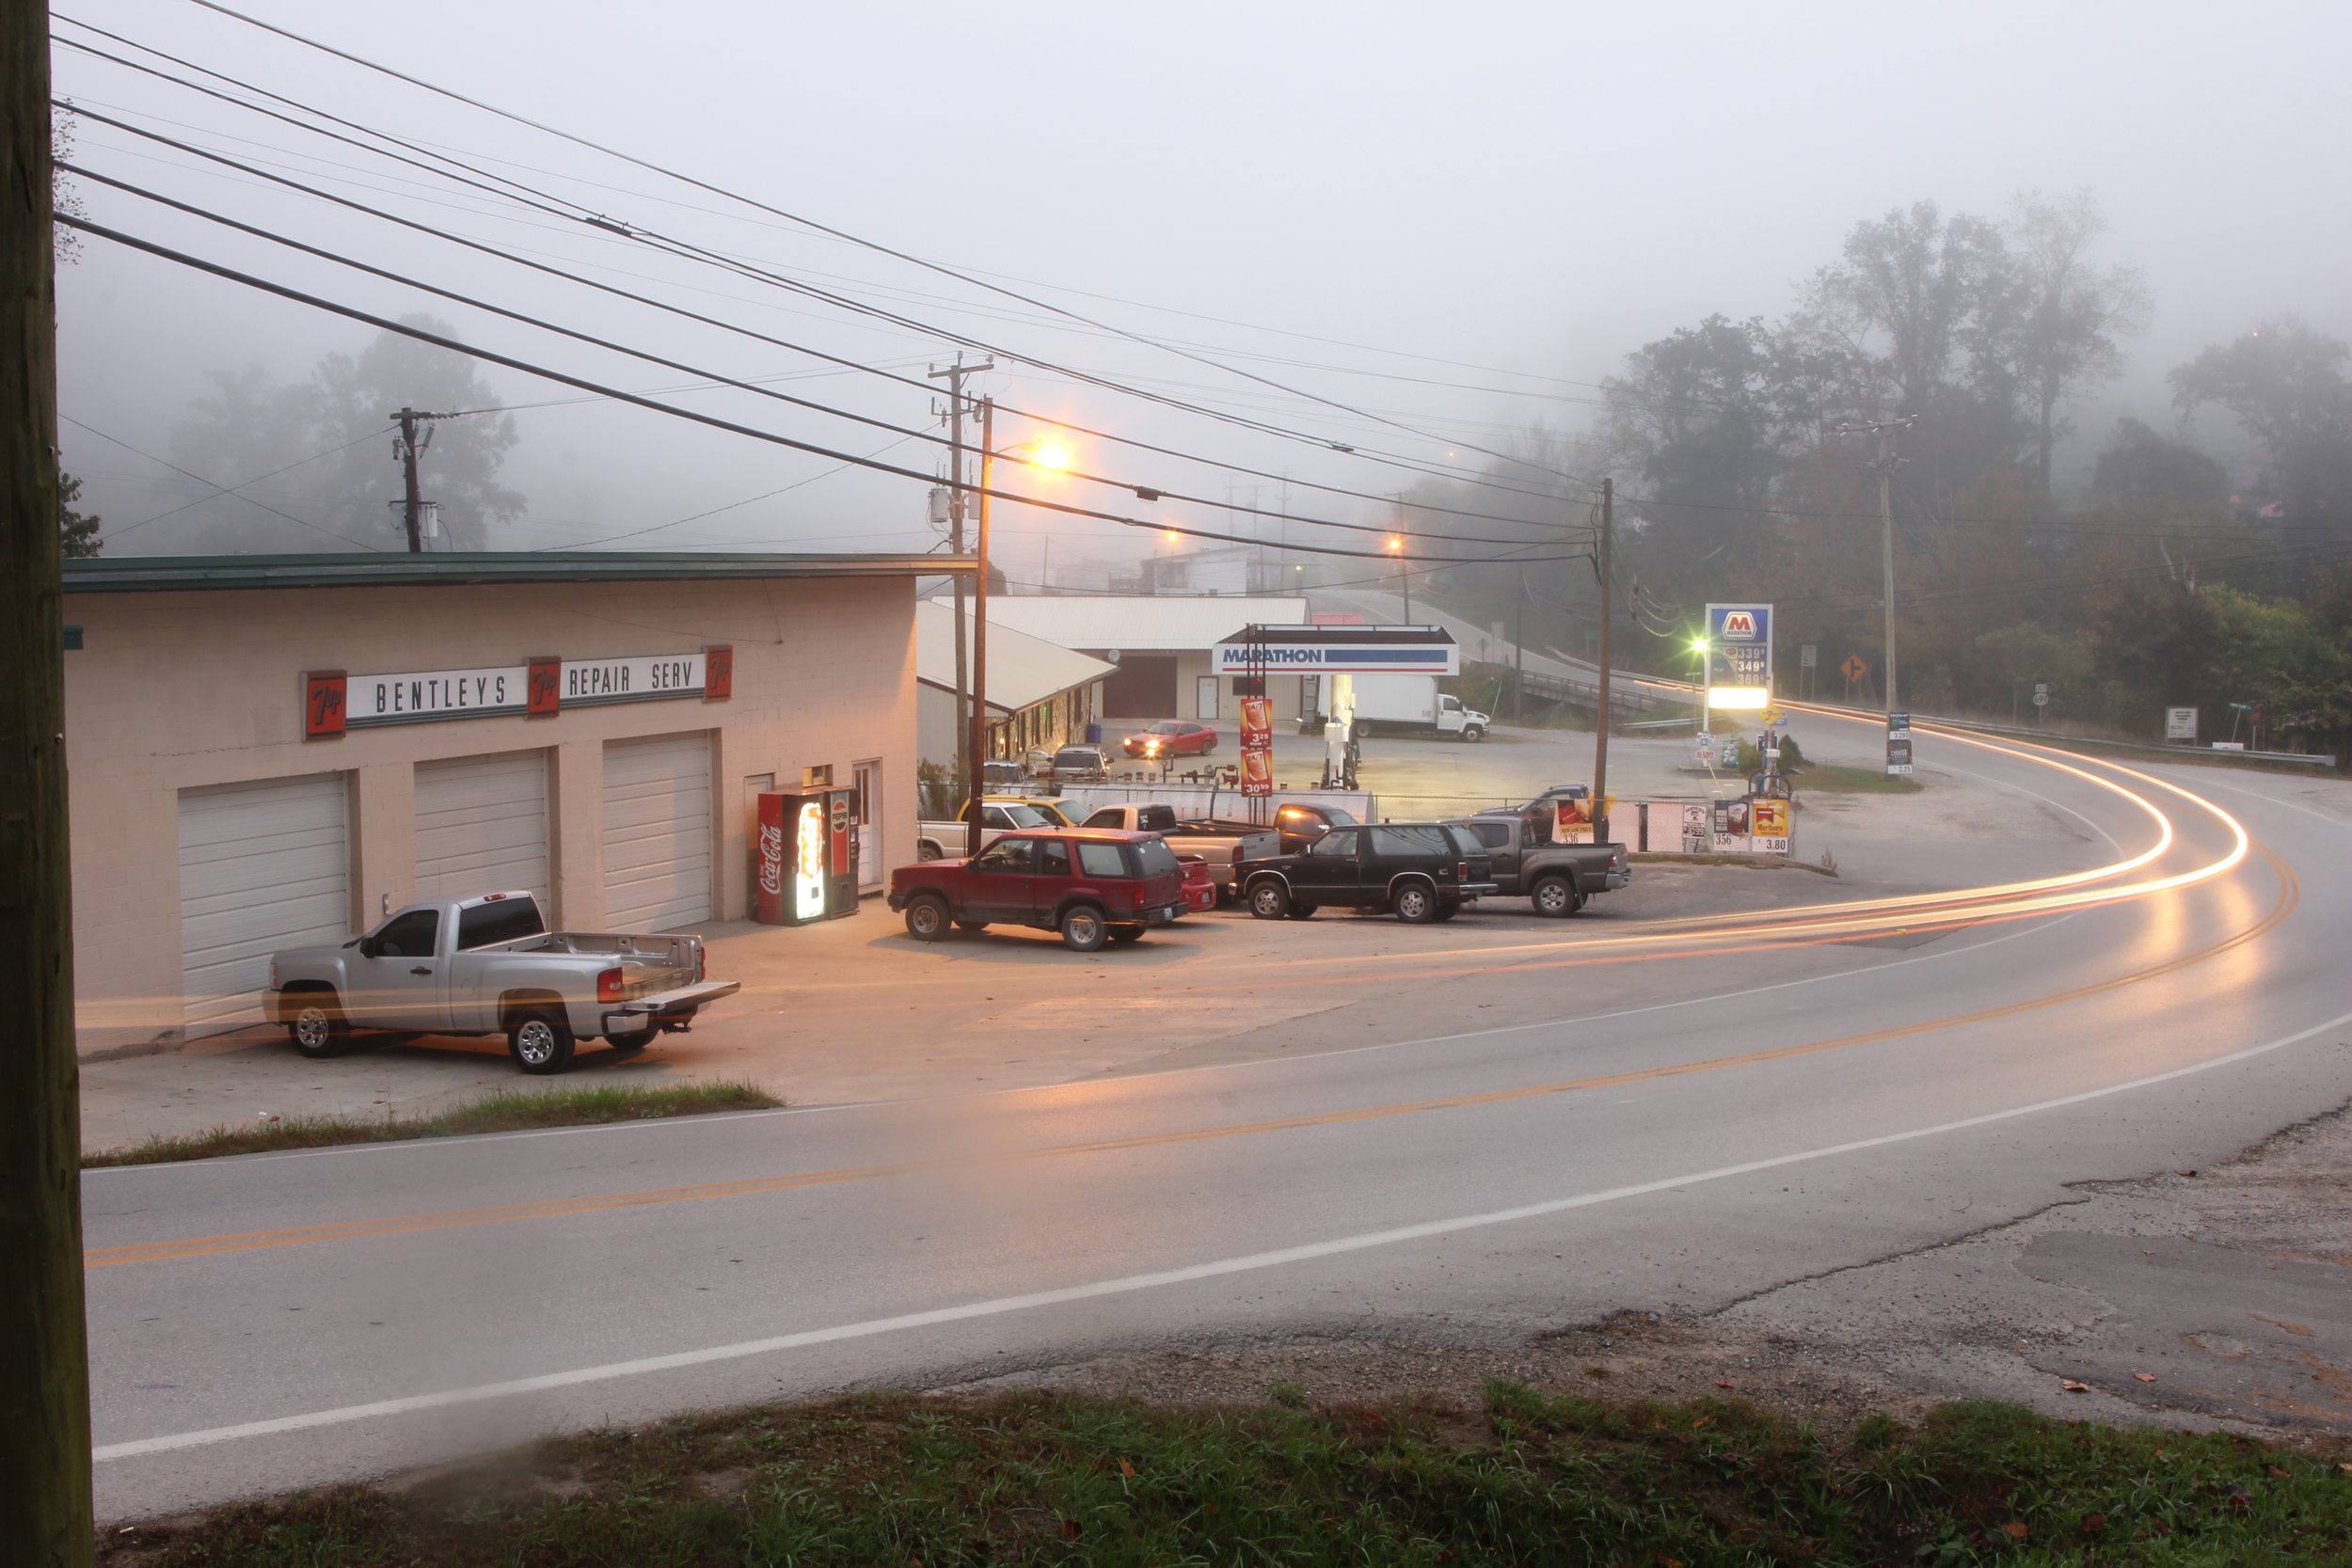 Early morning outside Bentley's Auto Service in Wooton, Ky.